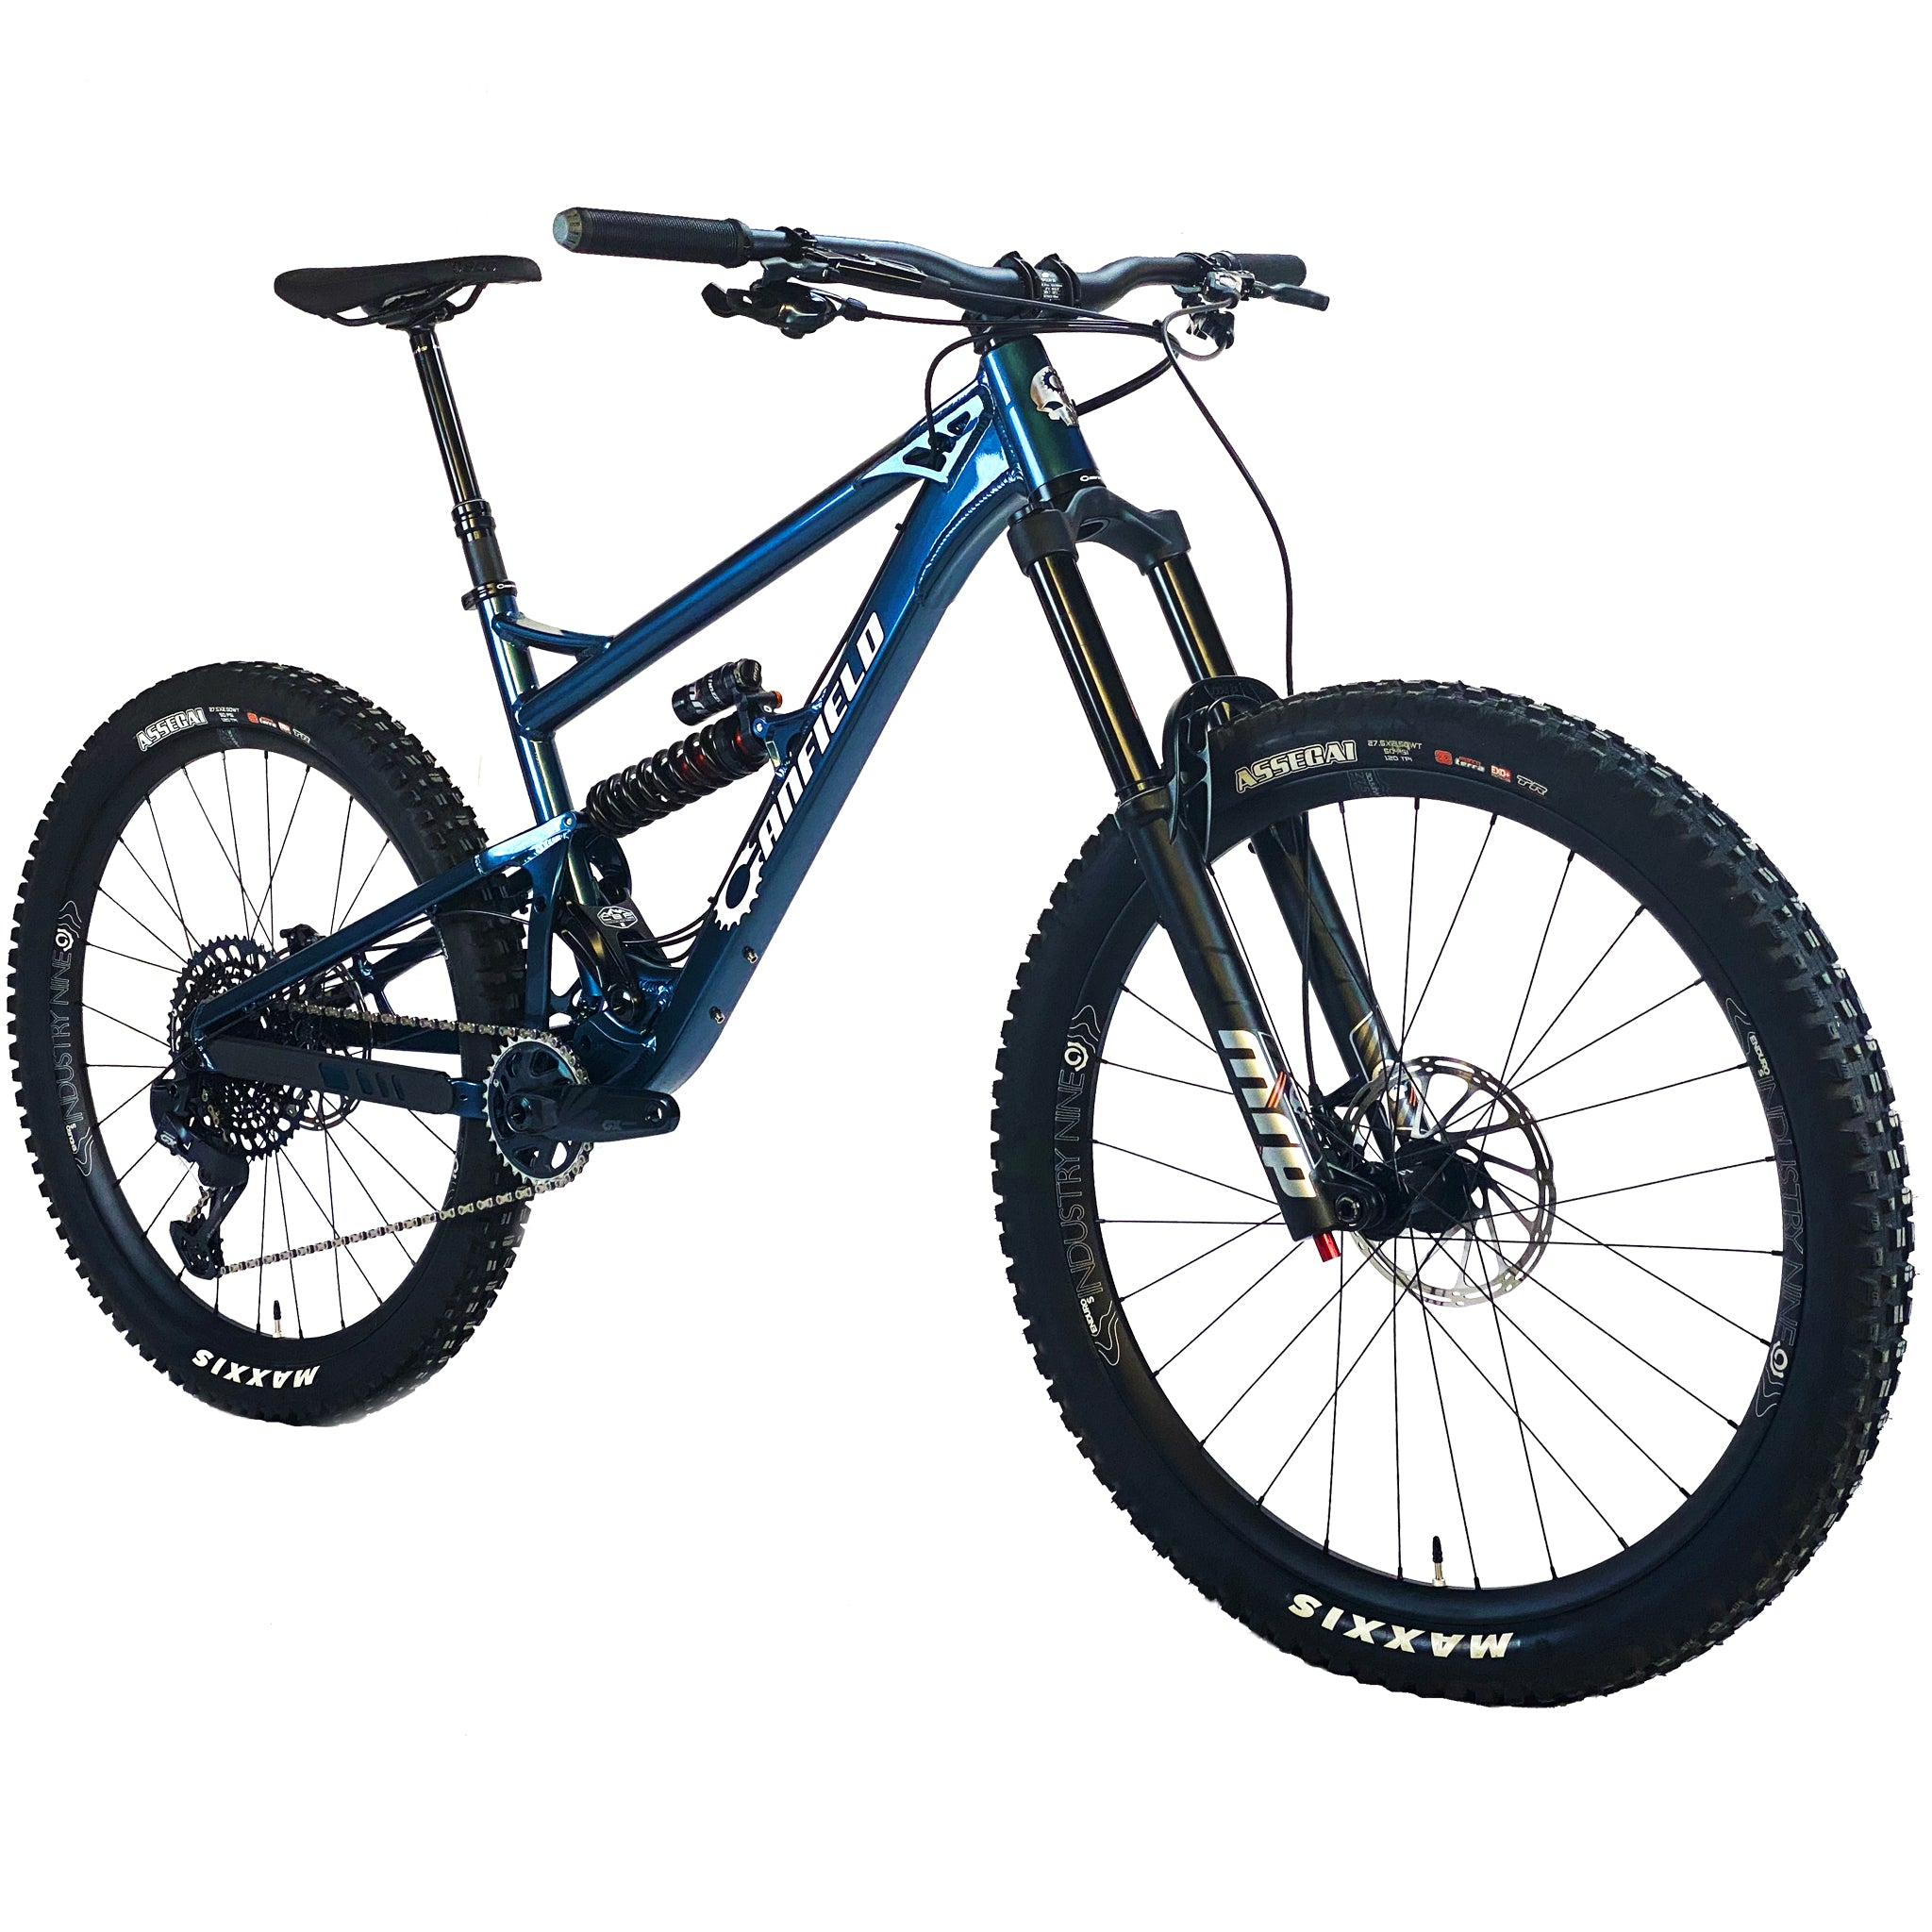 Canfield Balance - full-suspension mountain bike